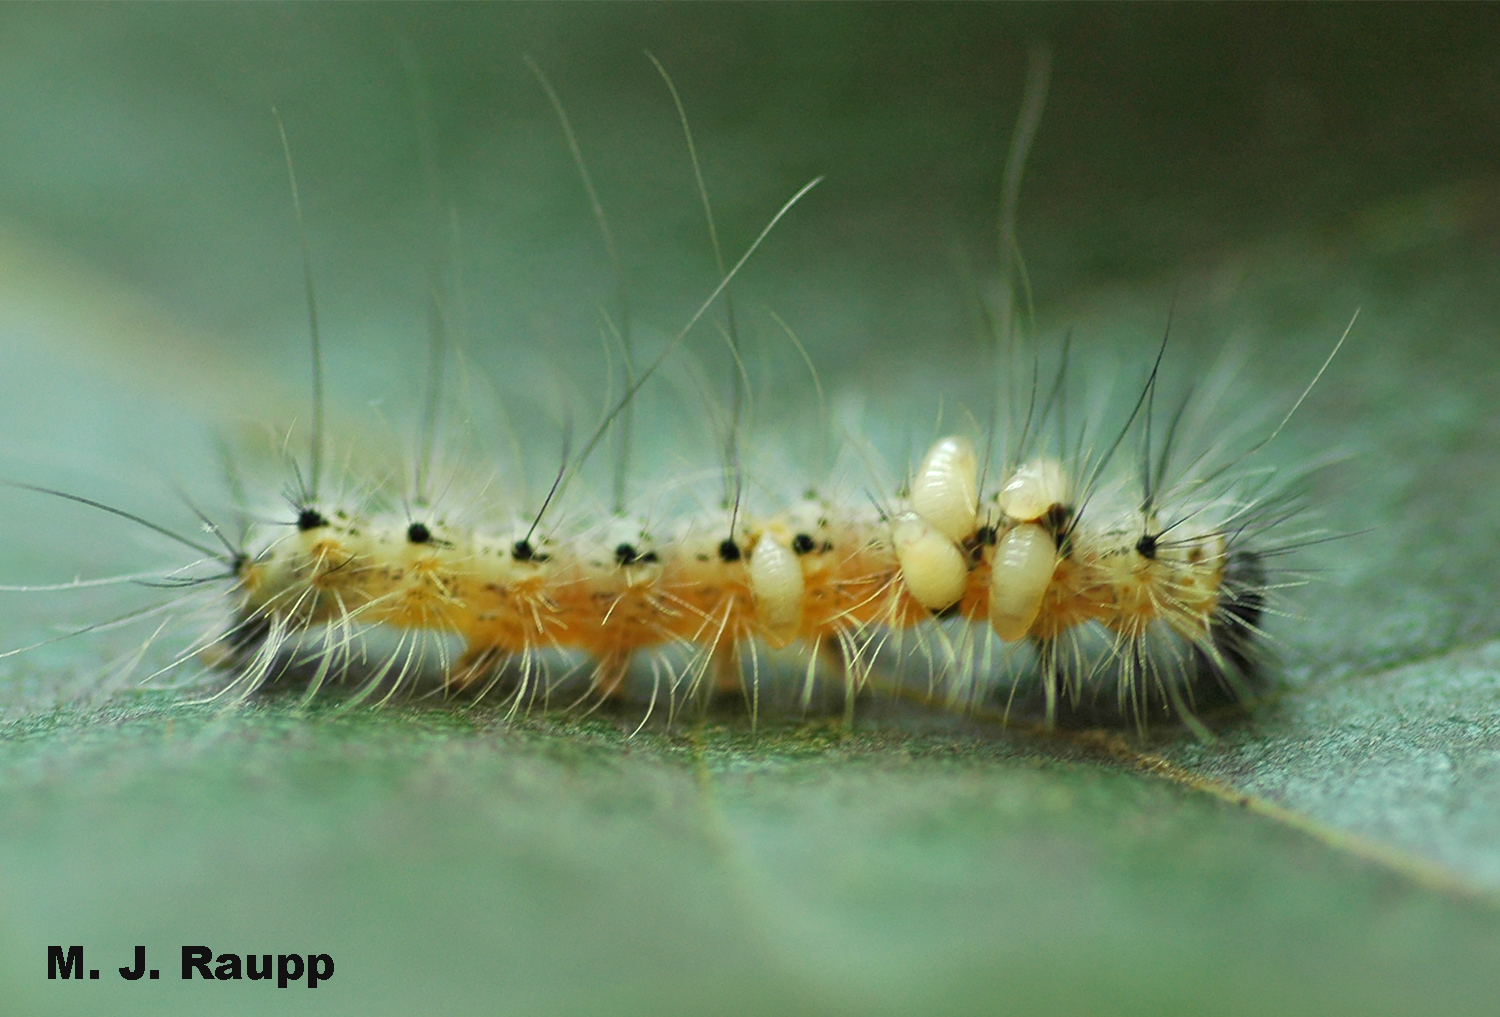 Larvae of parasitic wasps emerge from the body of a fall webworm after devouring its internal organs.